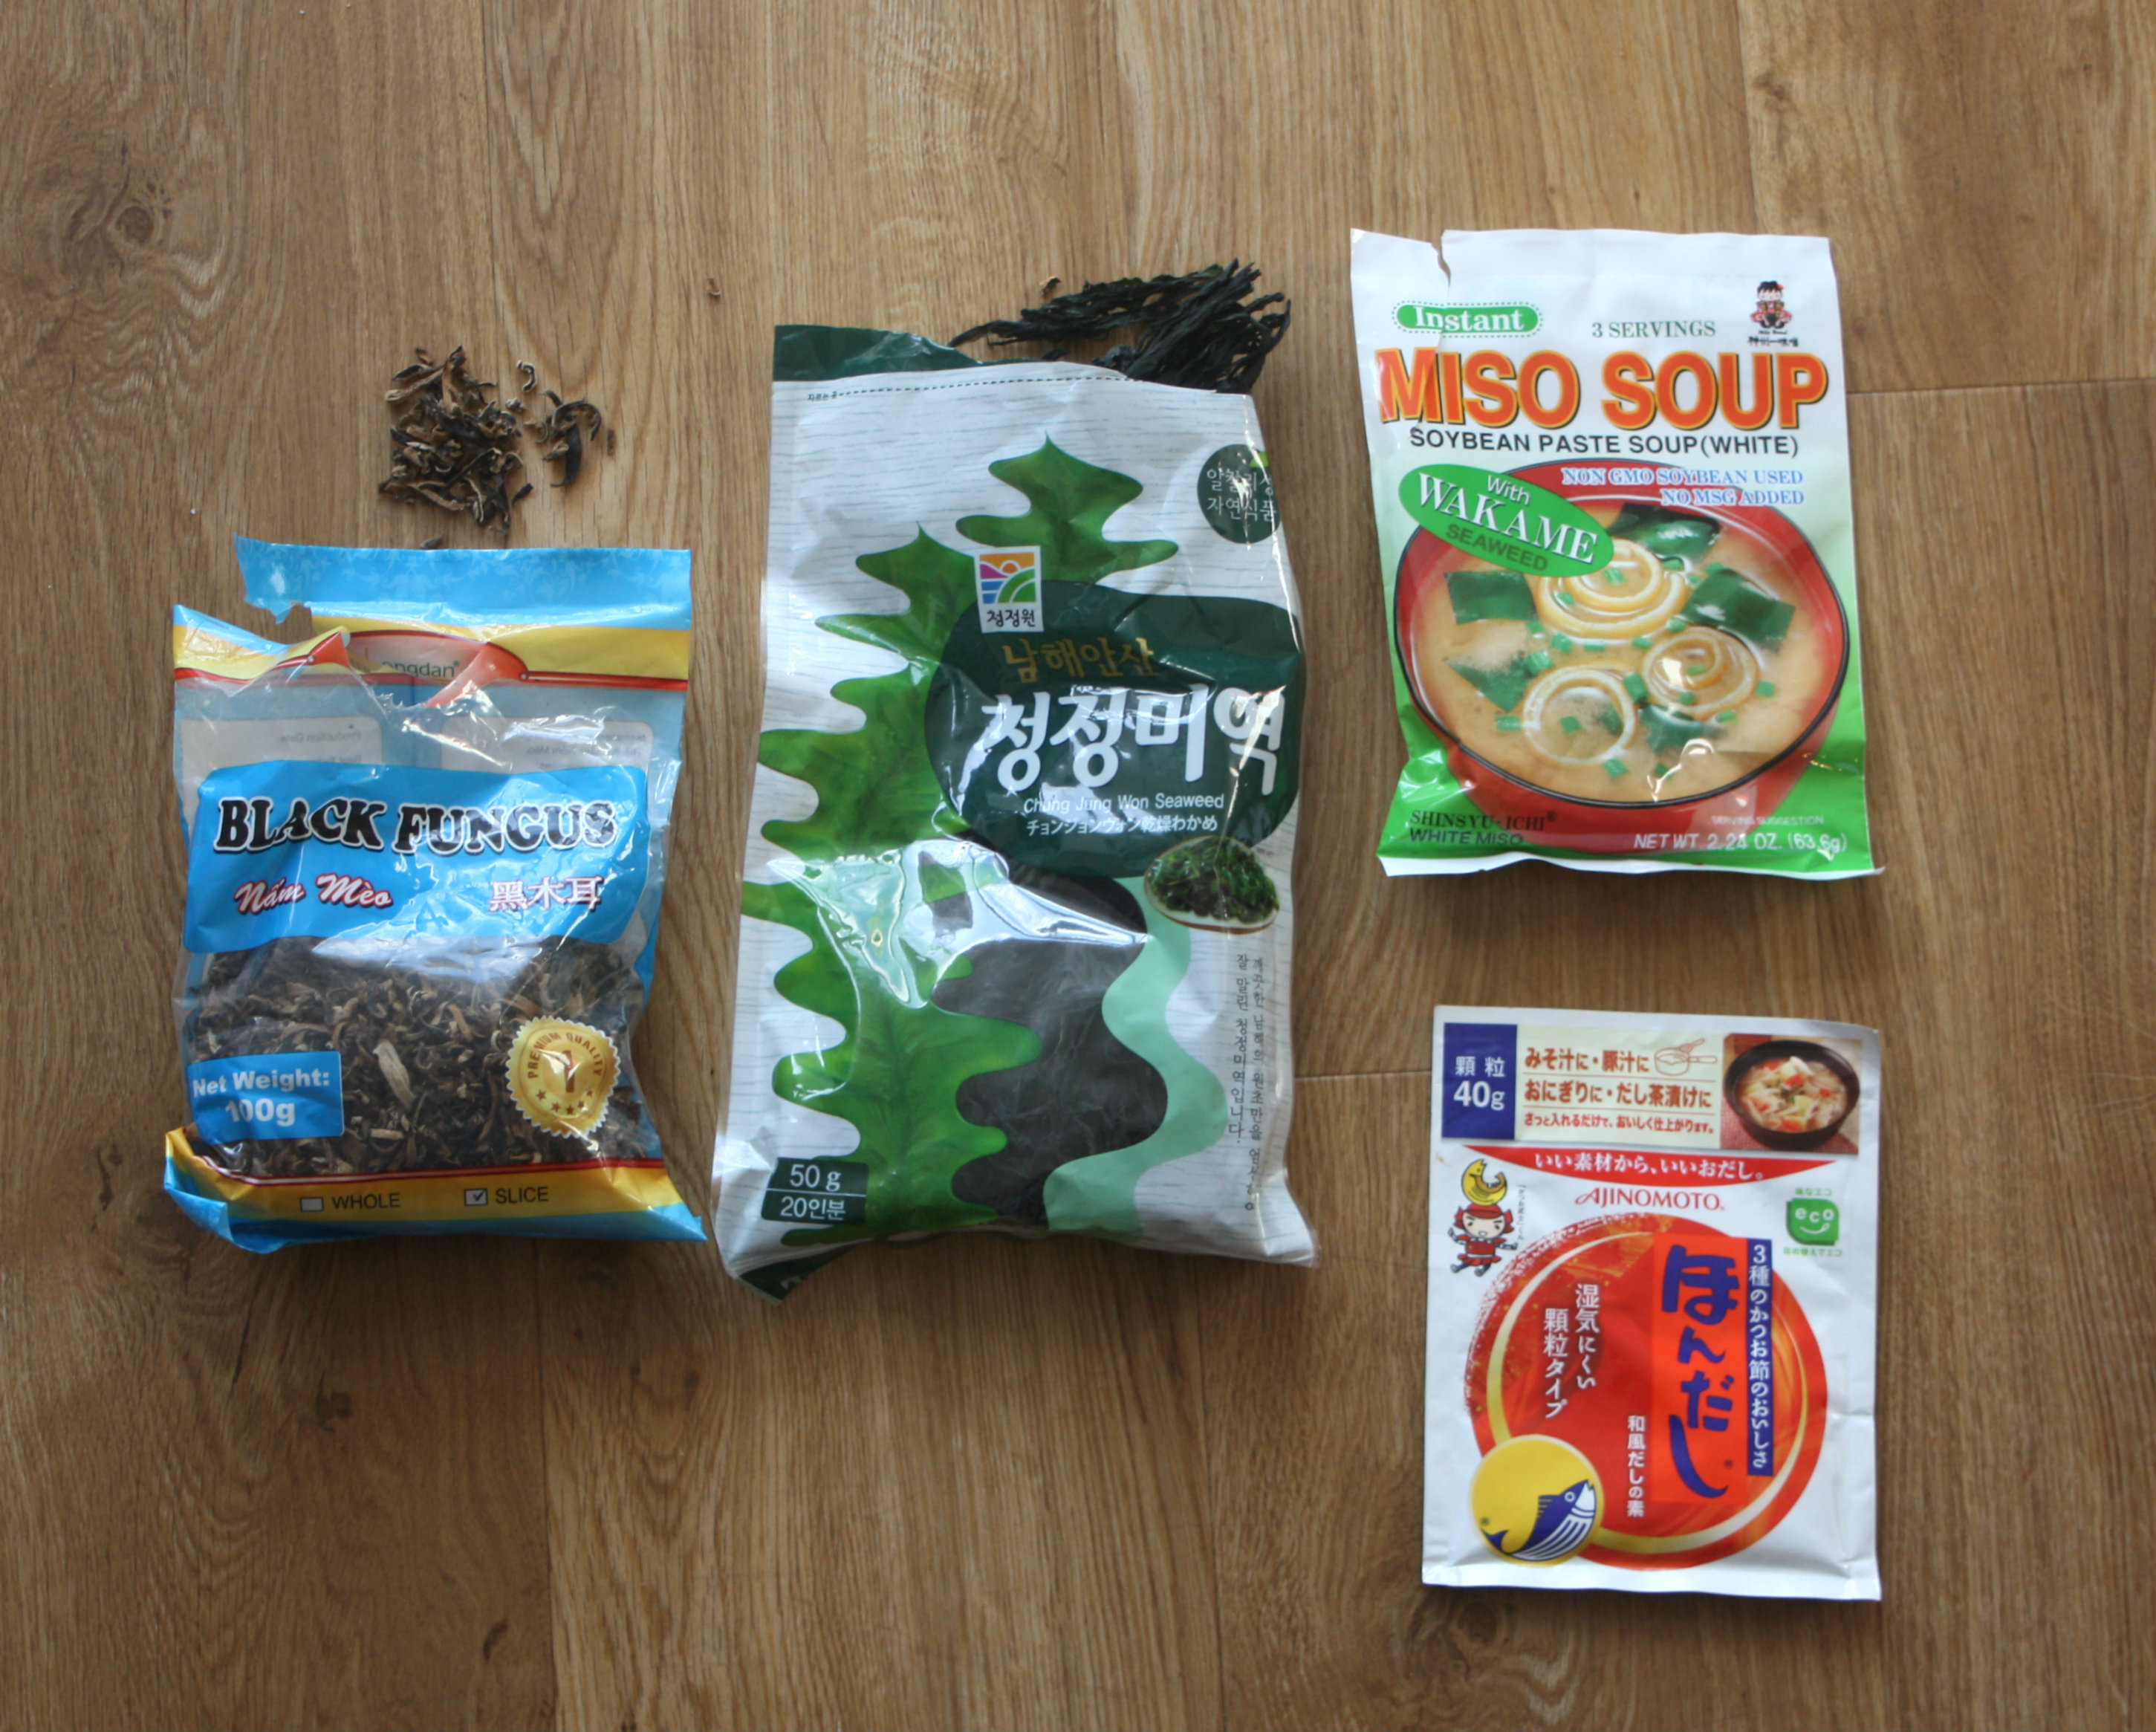 Some store cupboard ingredients (top right, clockwise): Instant Miso, Dashi Powder, Dried Mushroom, Dried Seaweed